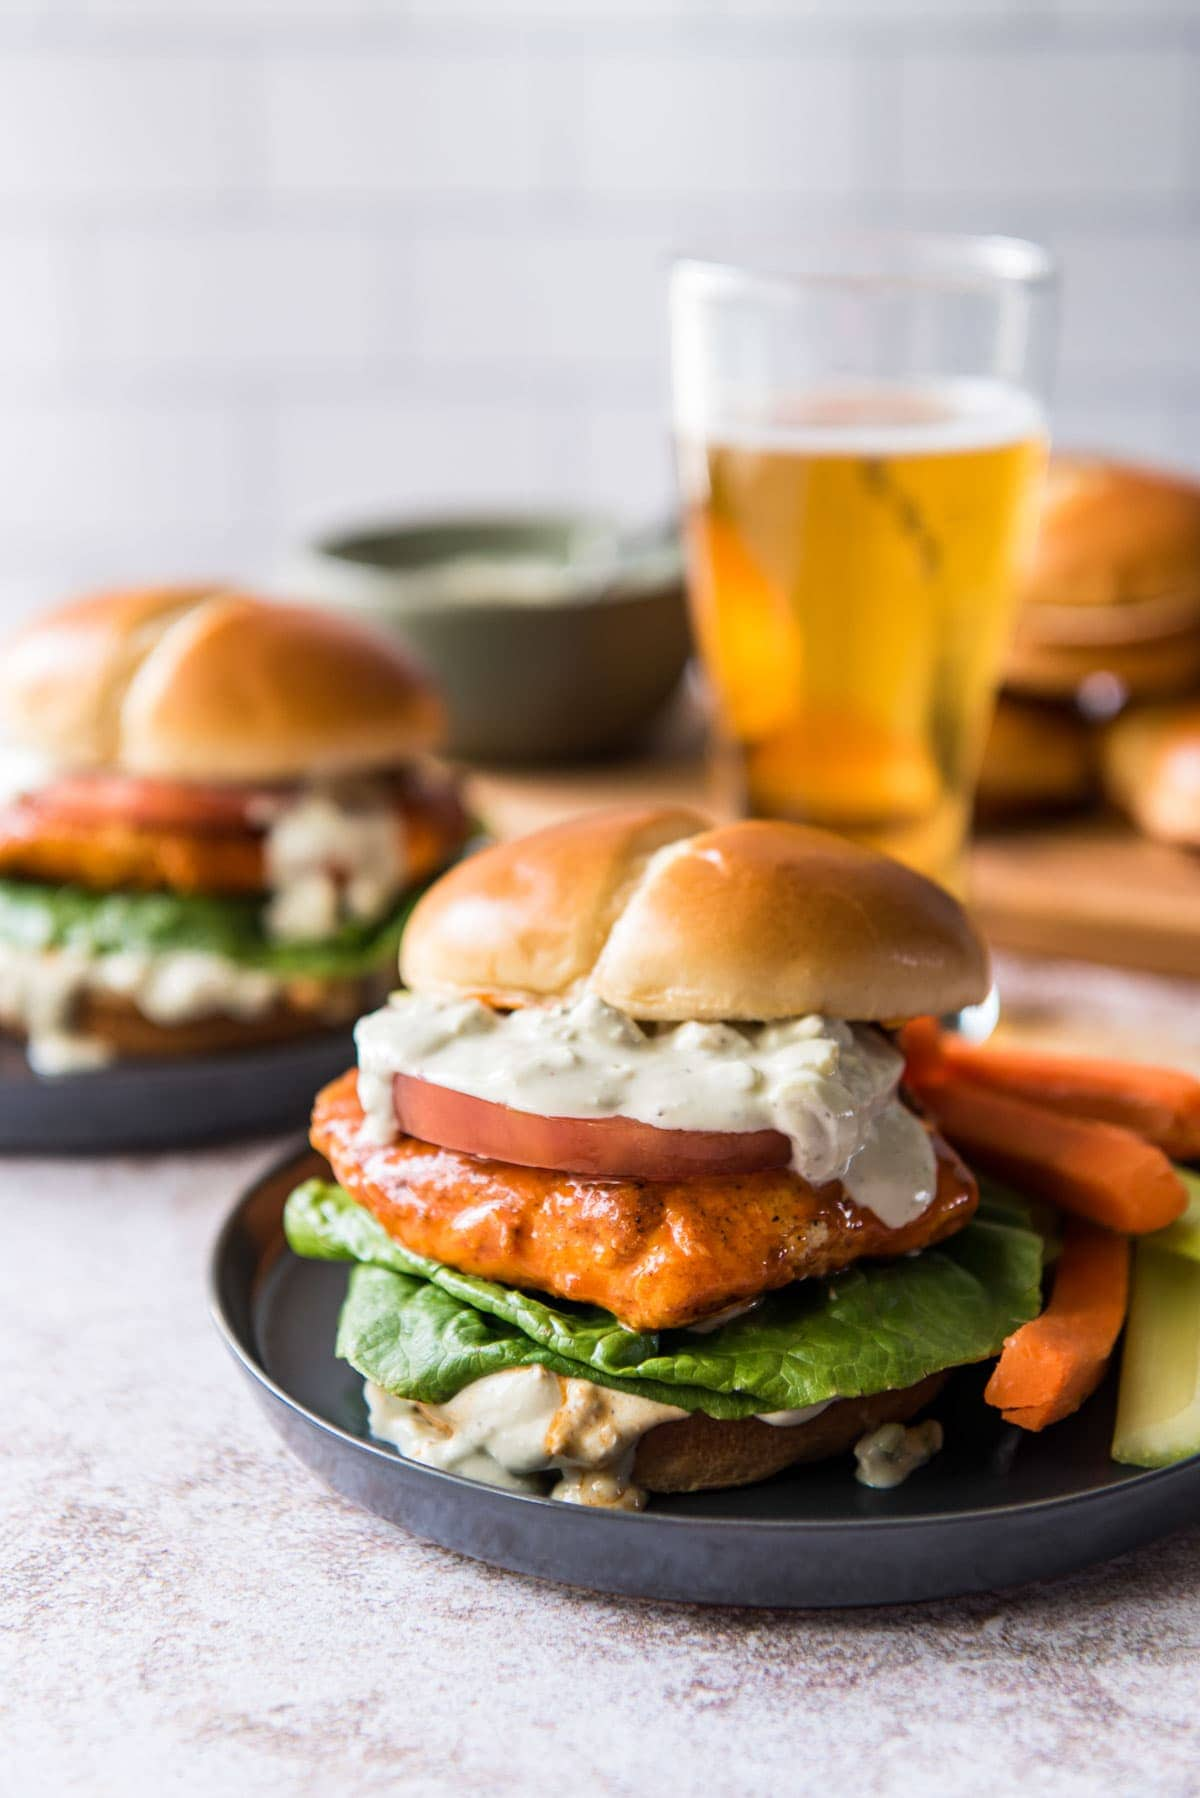 two black plates, 2 buffalo chicken sandwiches on buns with creamy sauce, lettuce and tomato, a beer, carrot and celery sticks